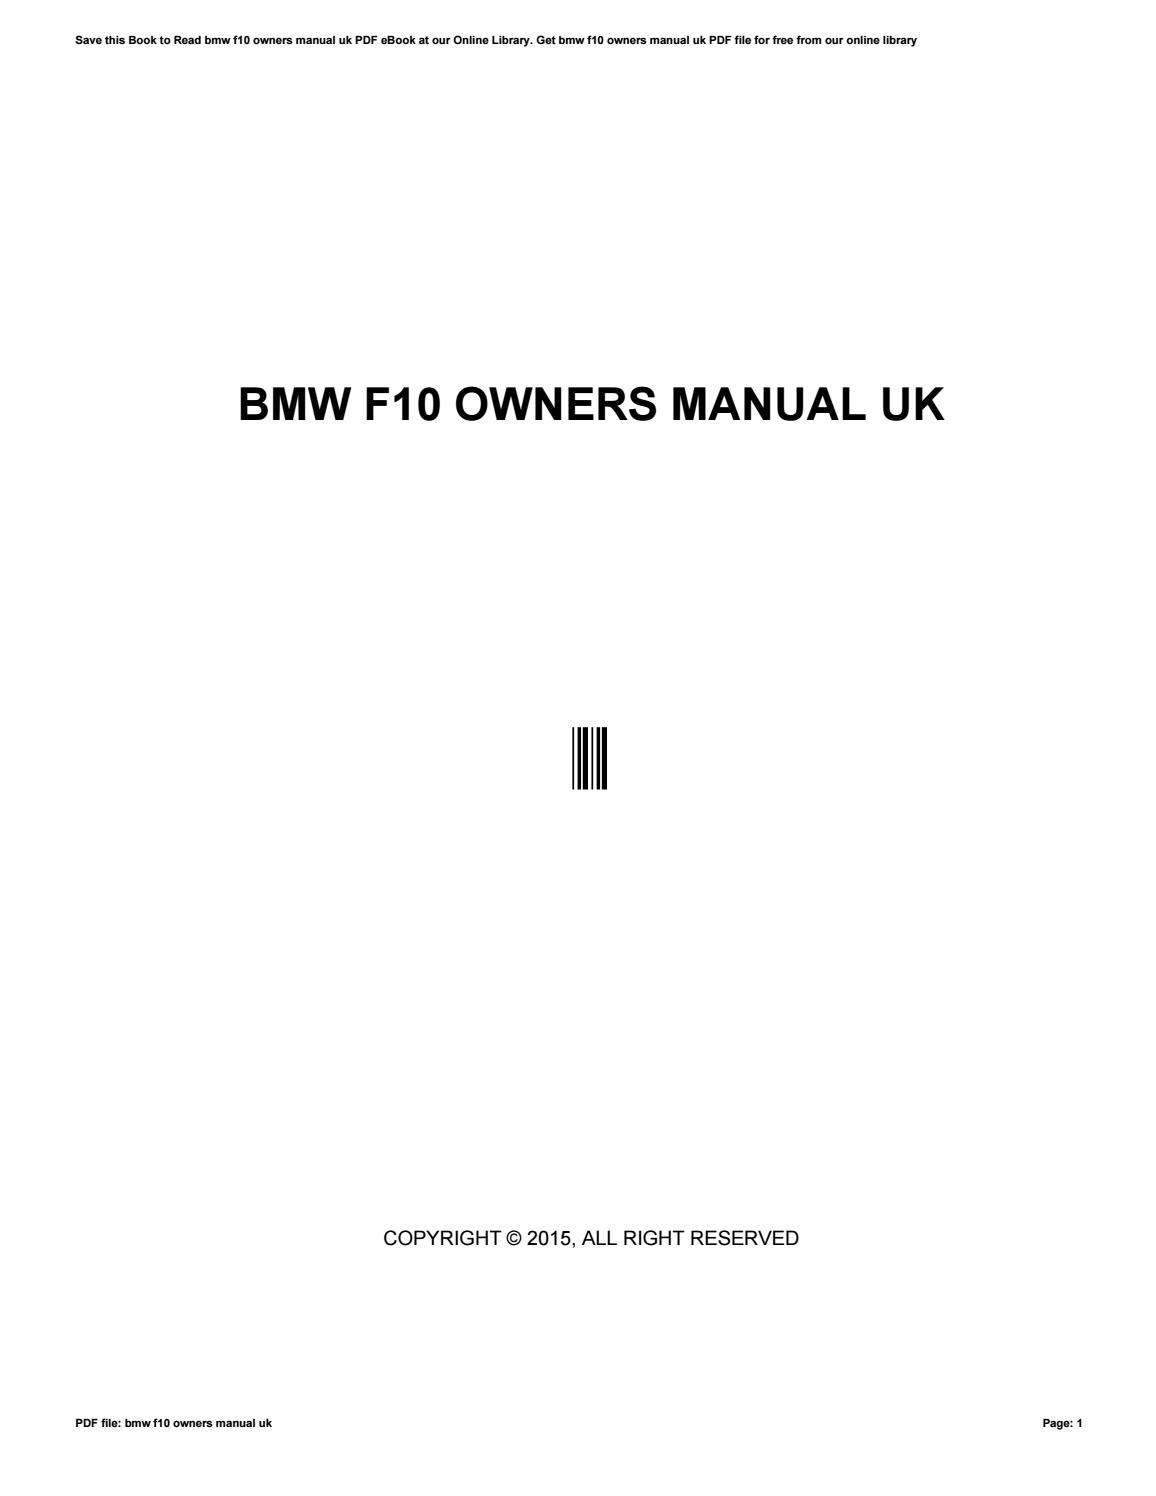 Bmw f10 owners manual uk by rblx43 - issuu